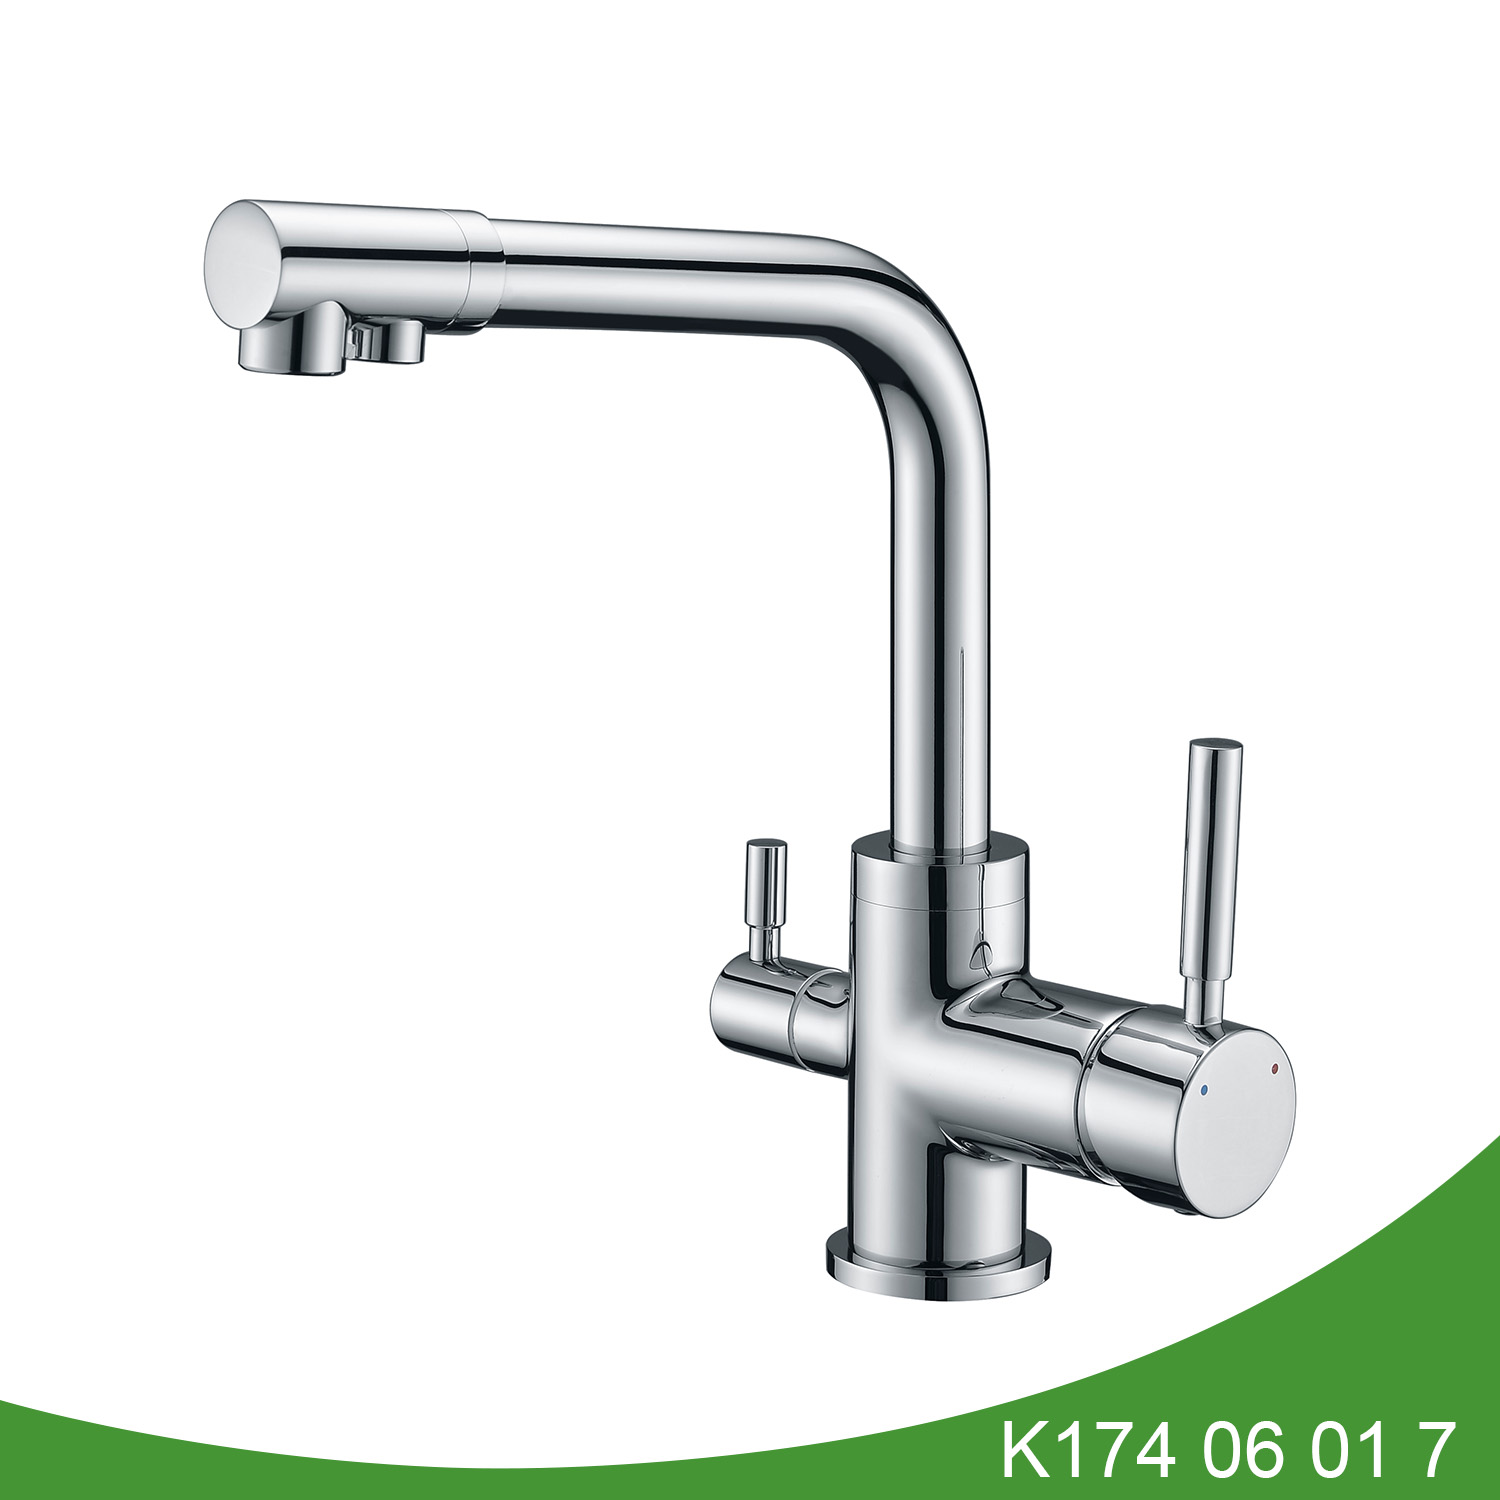 Kitchen filter tap K174 06 01 7